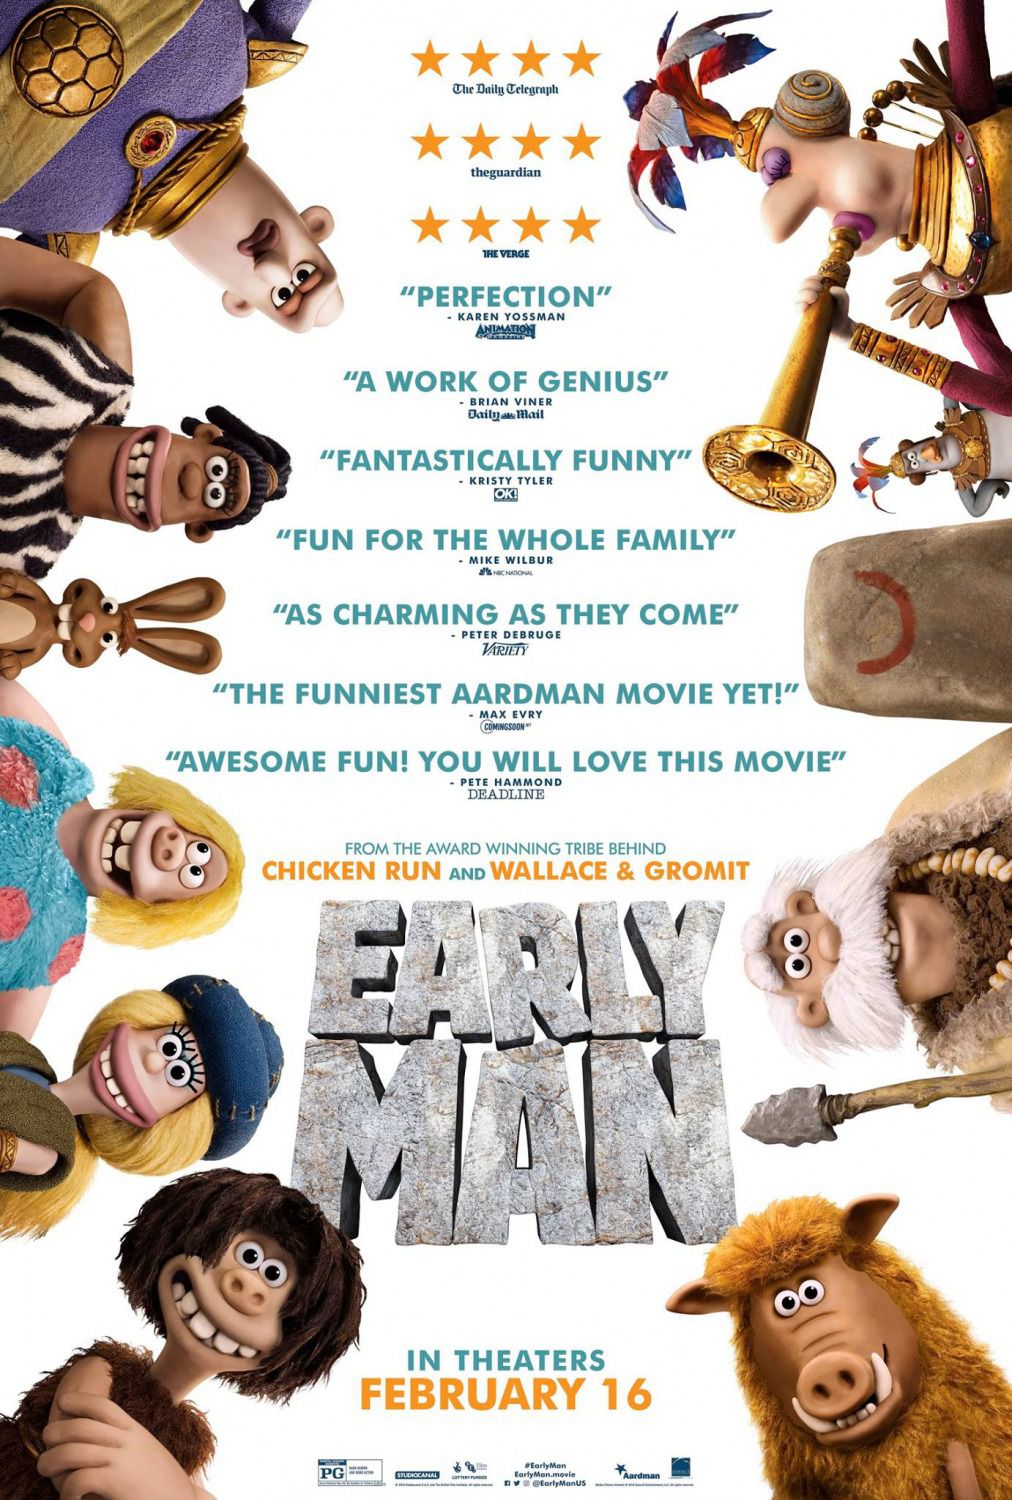 Early Man - Cavernicoli - Bronze and Stone Age - Bronzo e Pietra - animated cartoon film poster